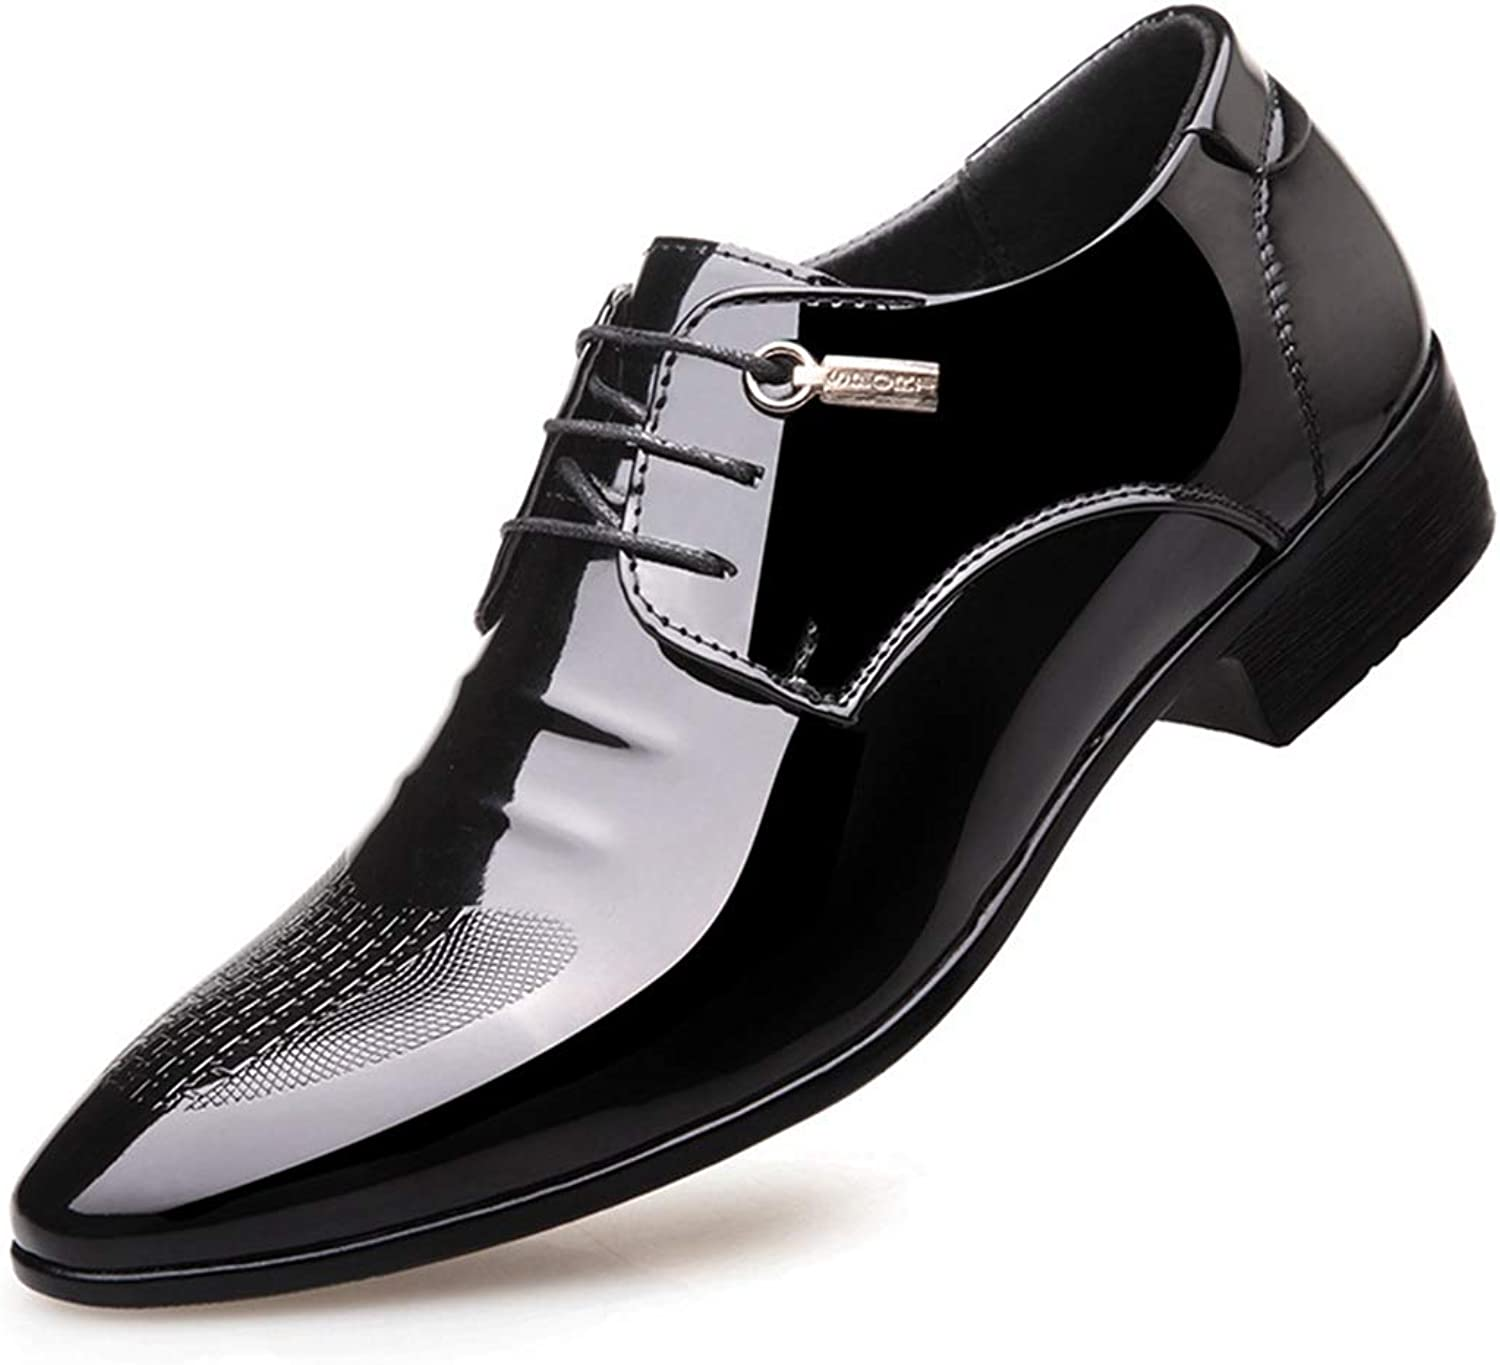 XINBONG Men's Business shoes Black Wingtip Classic Oxford shoes